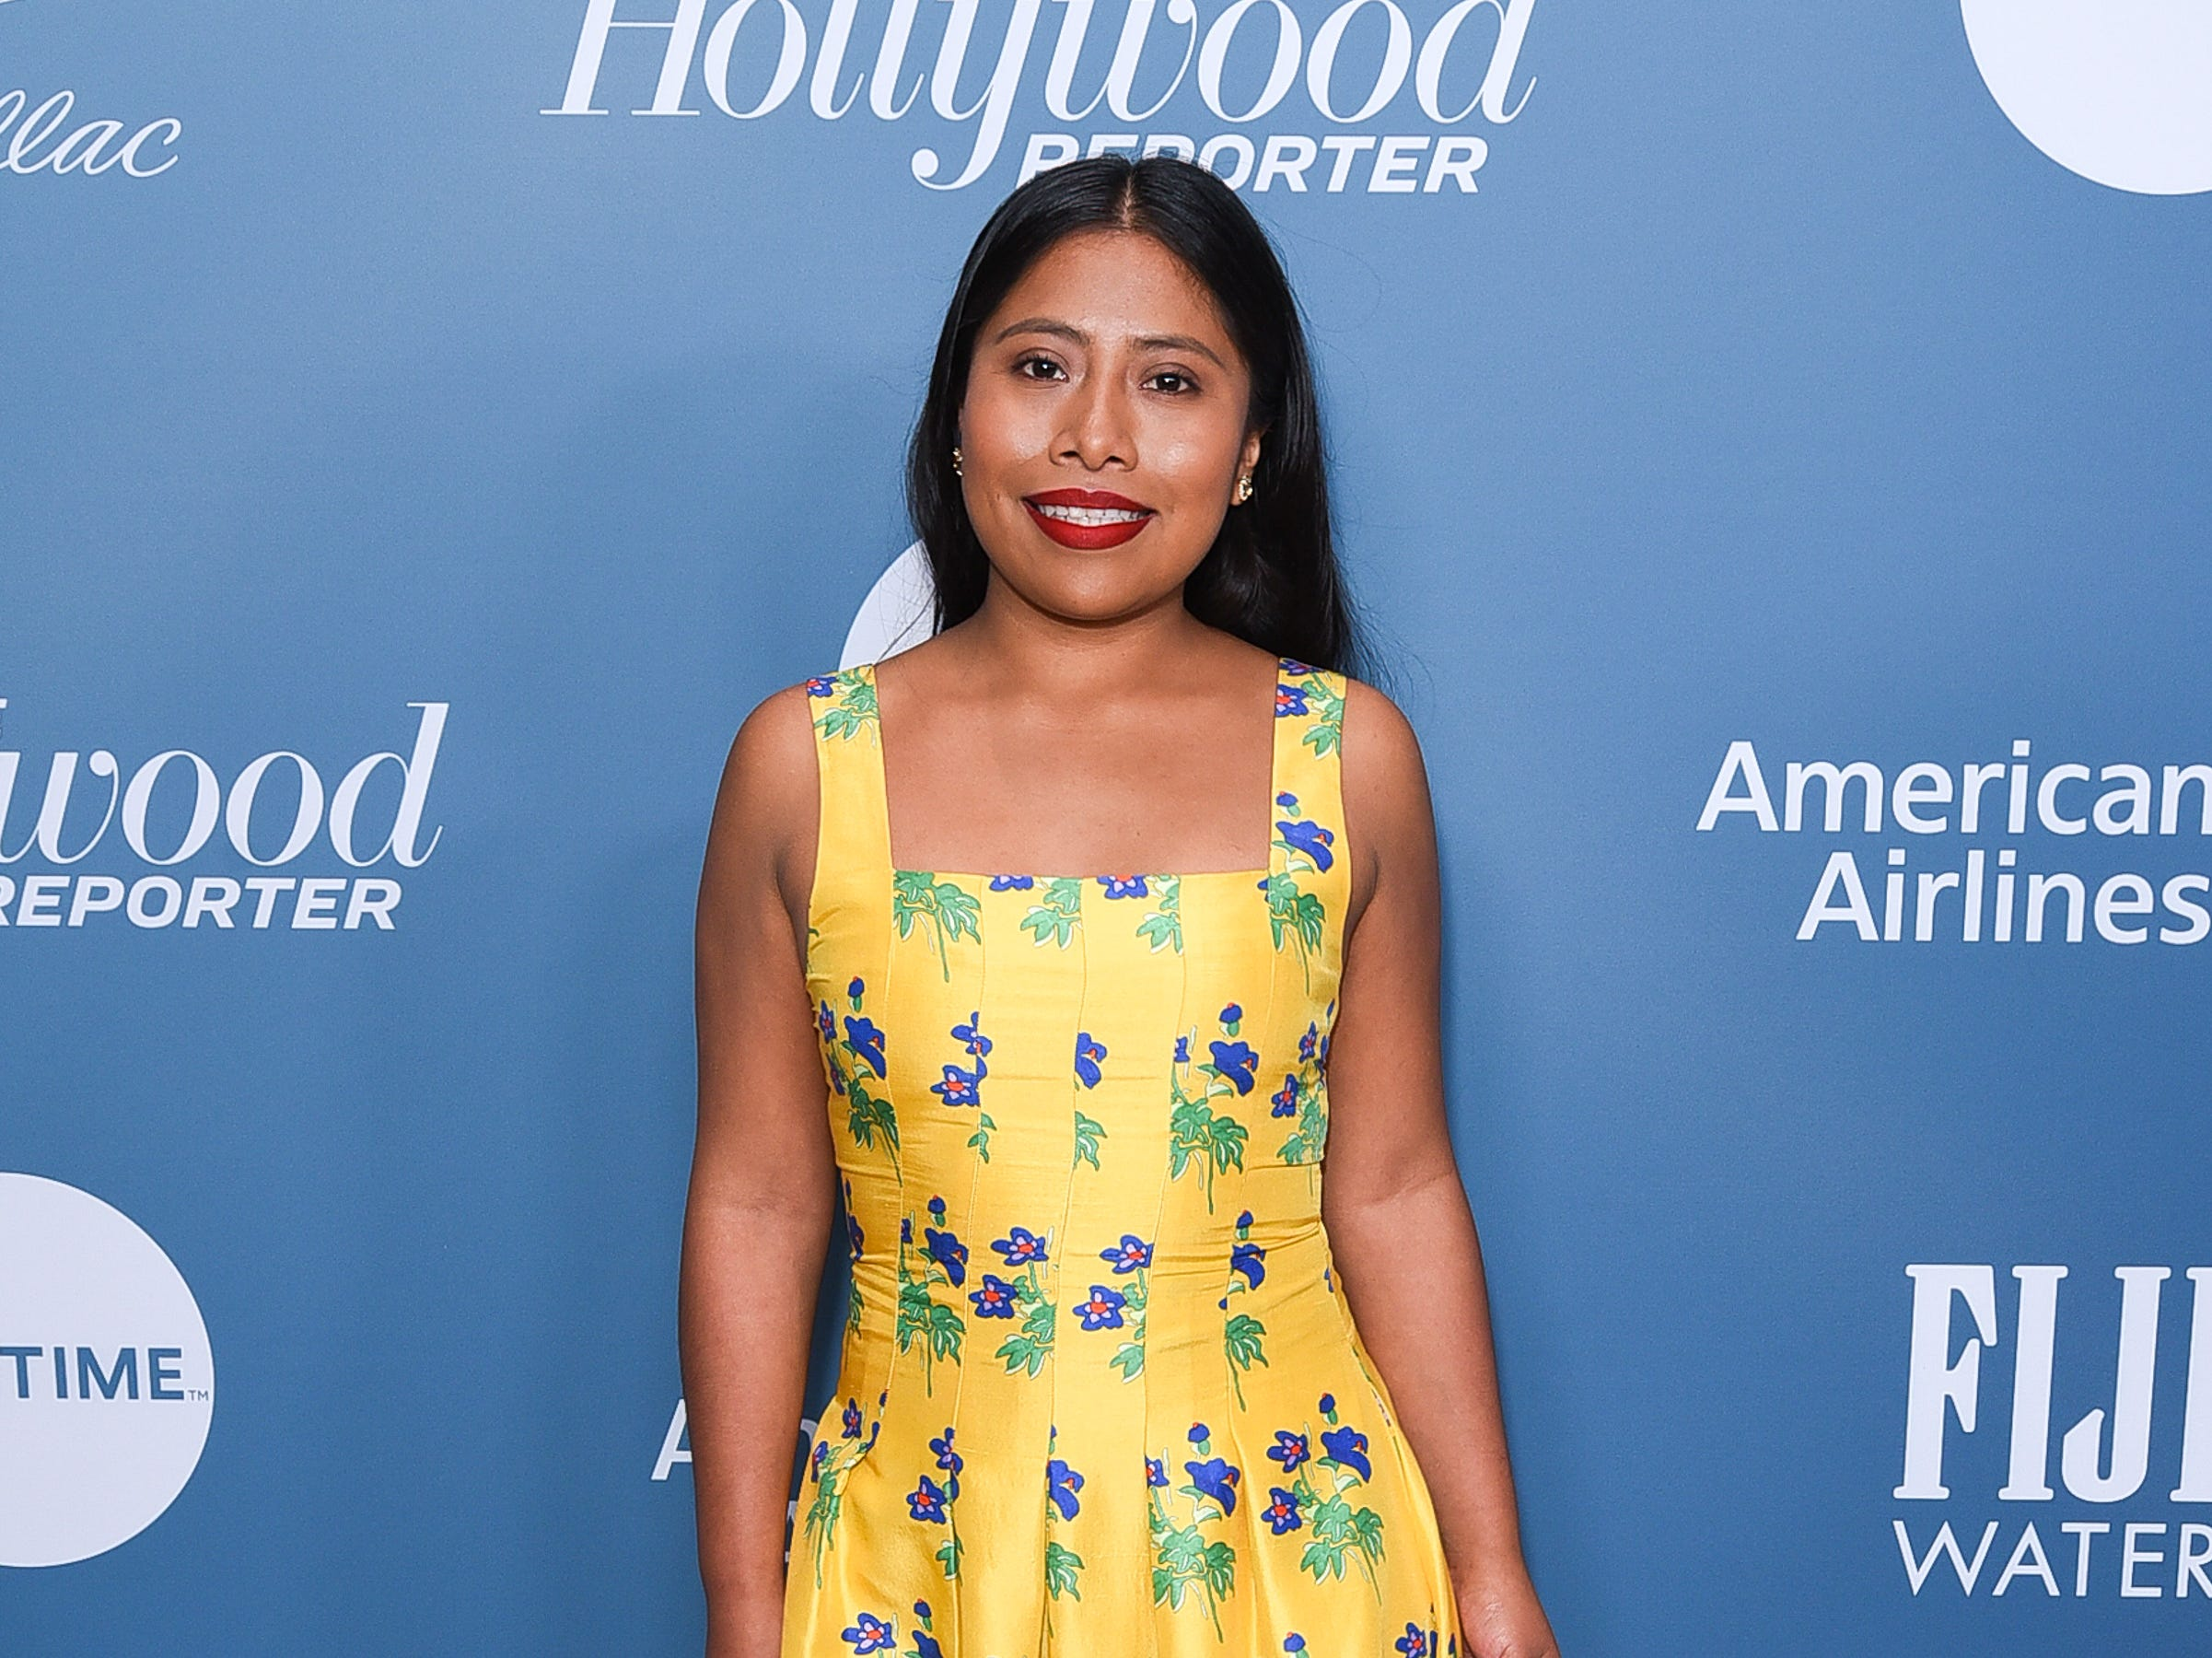 LOS ANGELES, CALIFORNIA - DECEMBER 05: Yalitza Aparicio attends The Hollywood Reporter's Power 100 Women In Entertainment at Milk Studios on December 05, 2018 in Los Angeles, California. (Photo by Presley Ann/Getty Images) ORG XMIT: 775264723 ORIG FILE ID: 1077819636